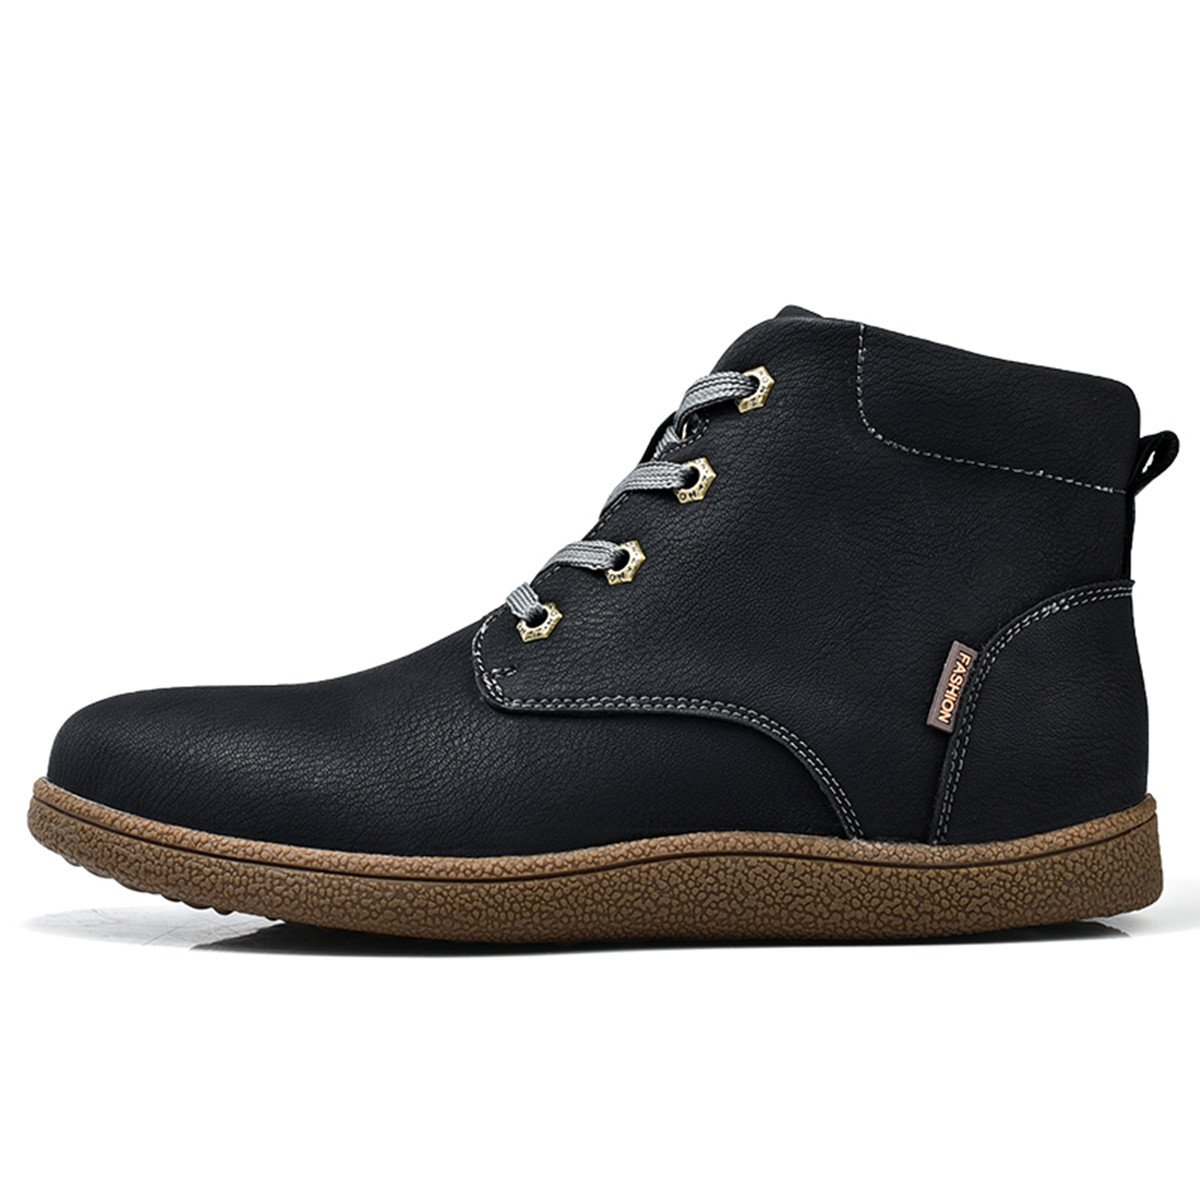 Gracosy Martin boots for Men, Men's Fashion Leather Lace up Boots Winter Cotton Lining Shoes Waterproof Boots Black Tag 43 by Gracosy (Image #3)